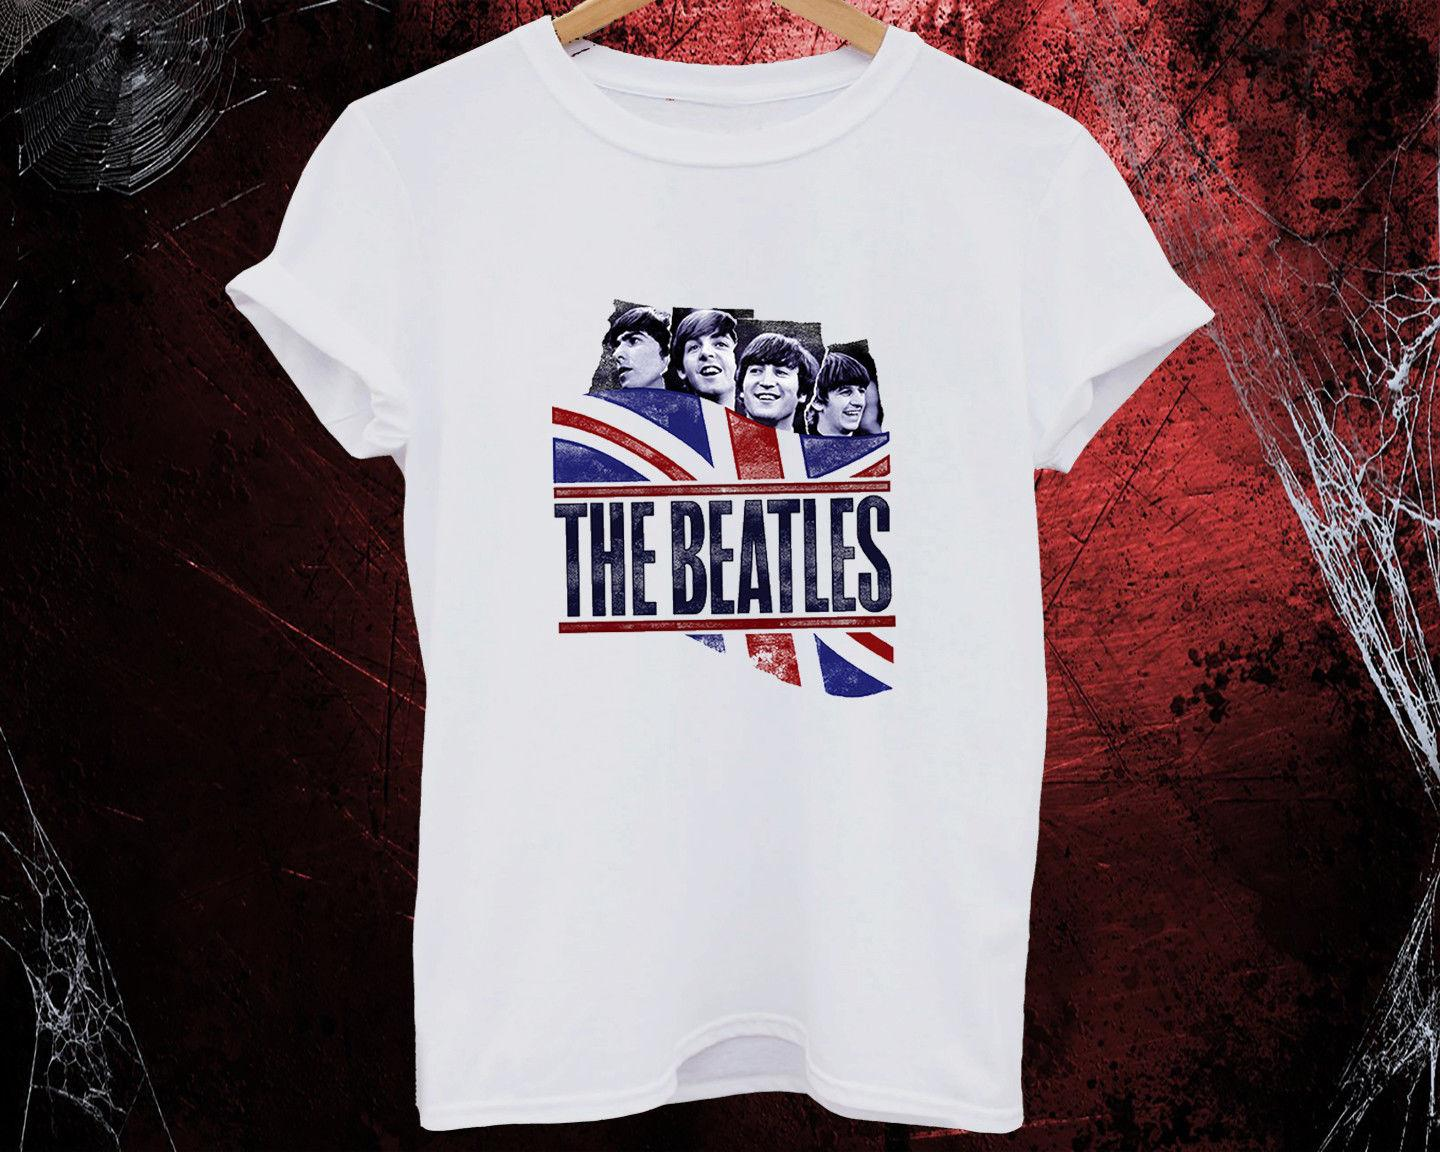 e536d1d9a The Beatles T Shirt English Rock Band Men Women Kids Tattoo Art Souvenir  Gifts Funny Unisex Casual Funny T Shirts For Sale Awesome T Shirt Design  From ...